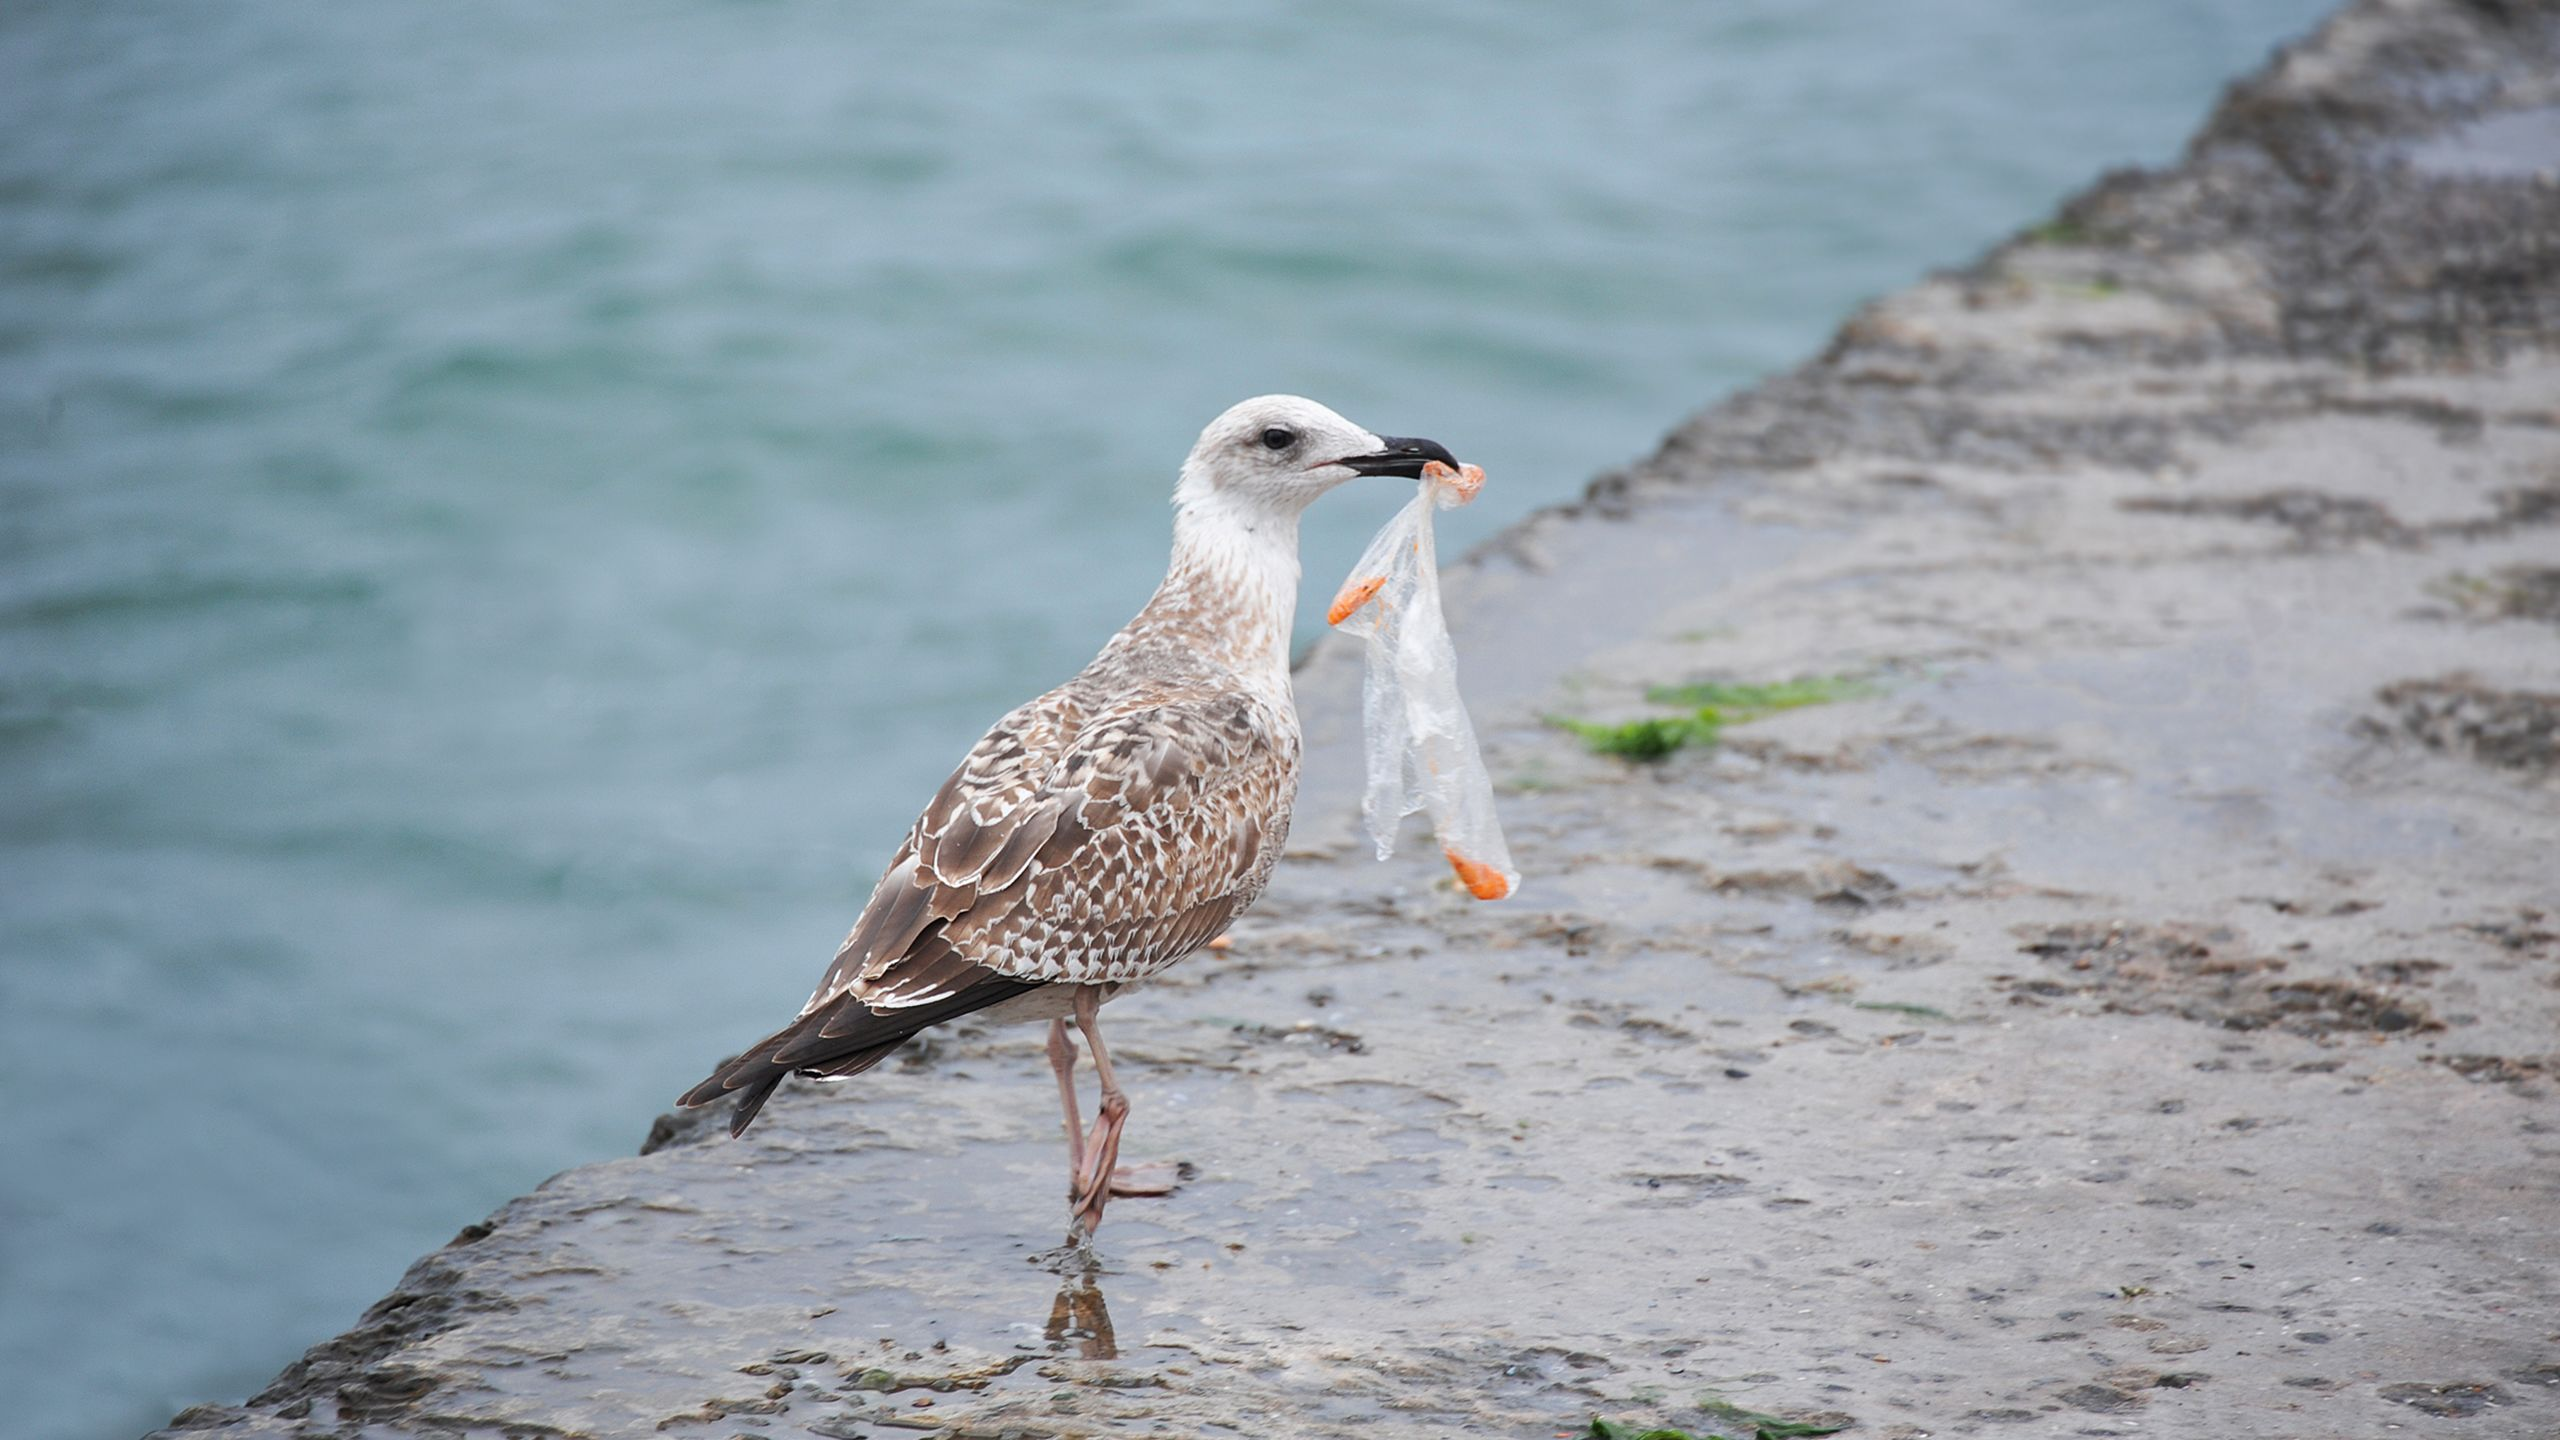 Seagull with a bag in its mouth.